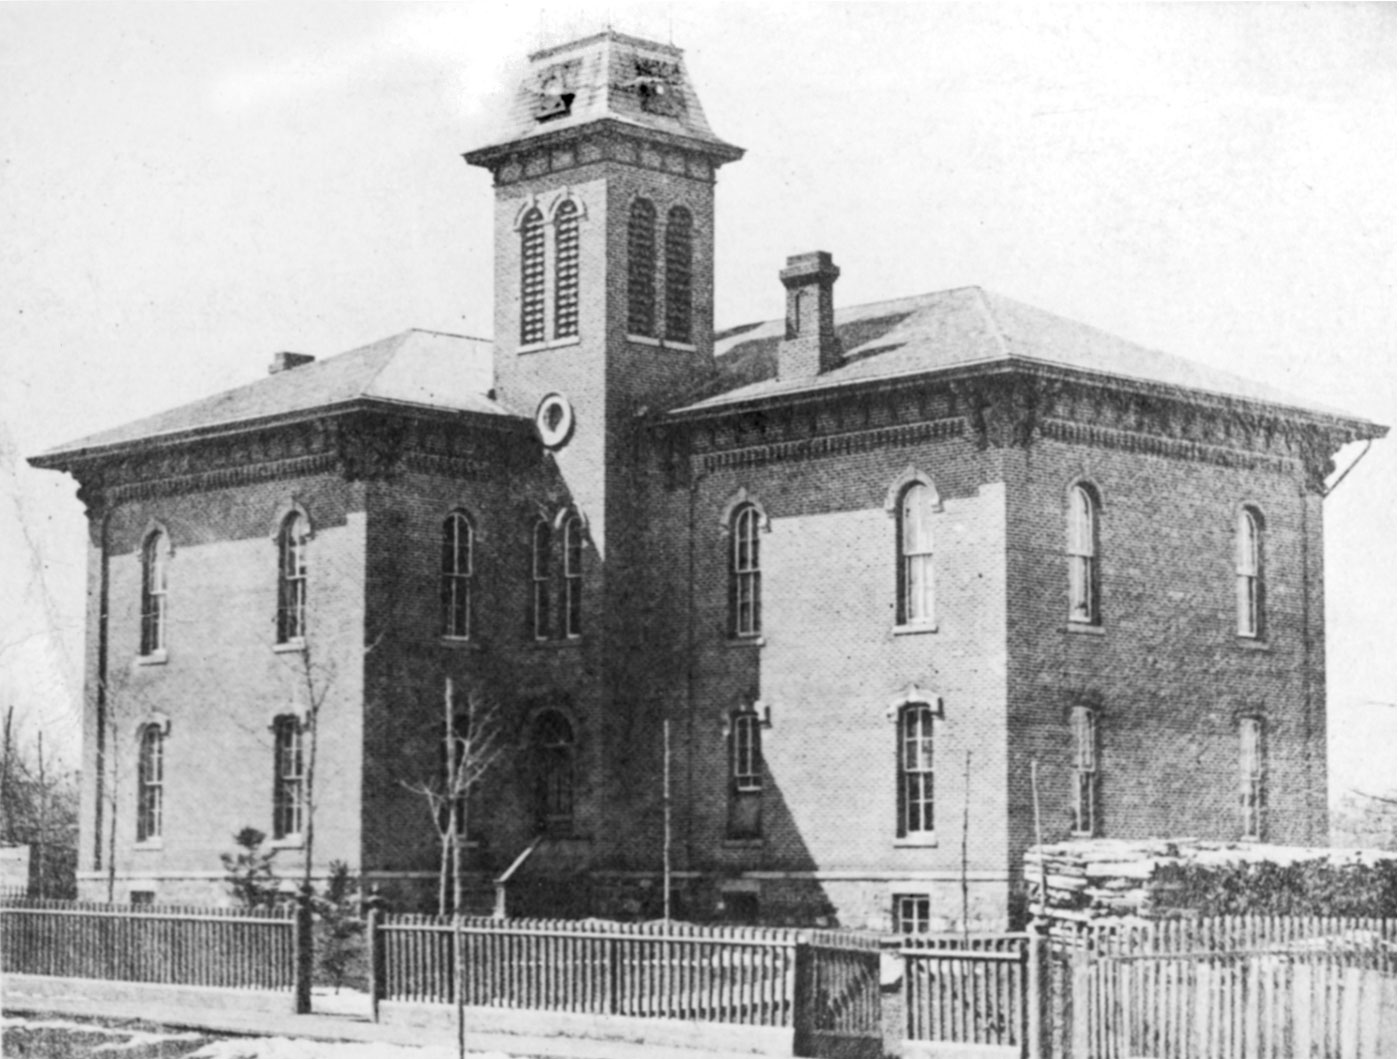 The Fourth Ward school, 1867 image